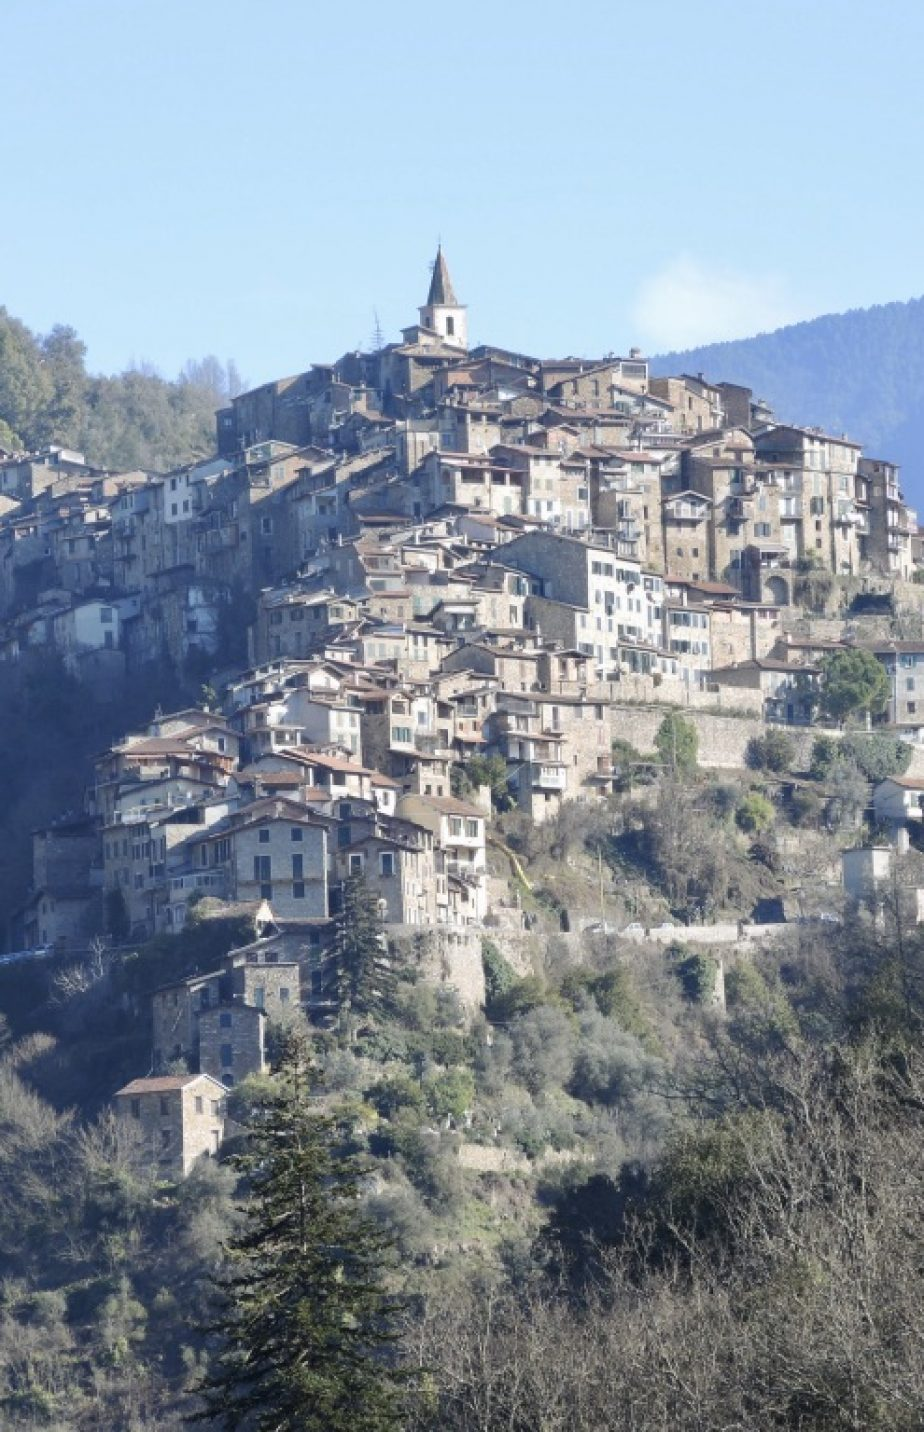 October 2019 – Guided tour and lunch in the medieval village of Apricale, Italy